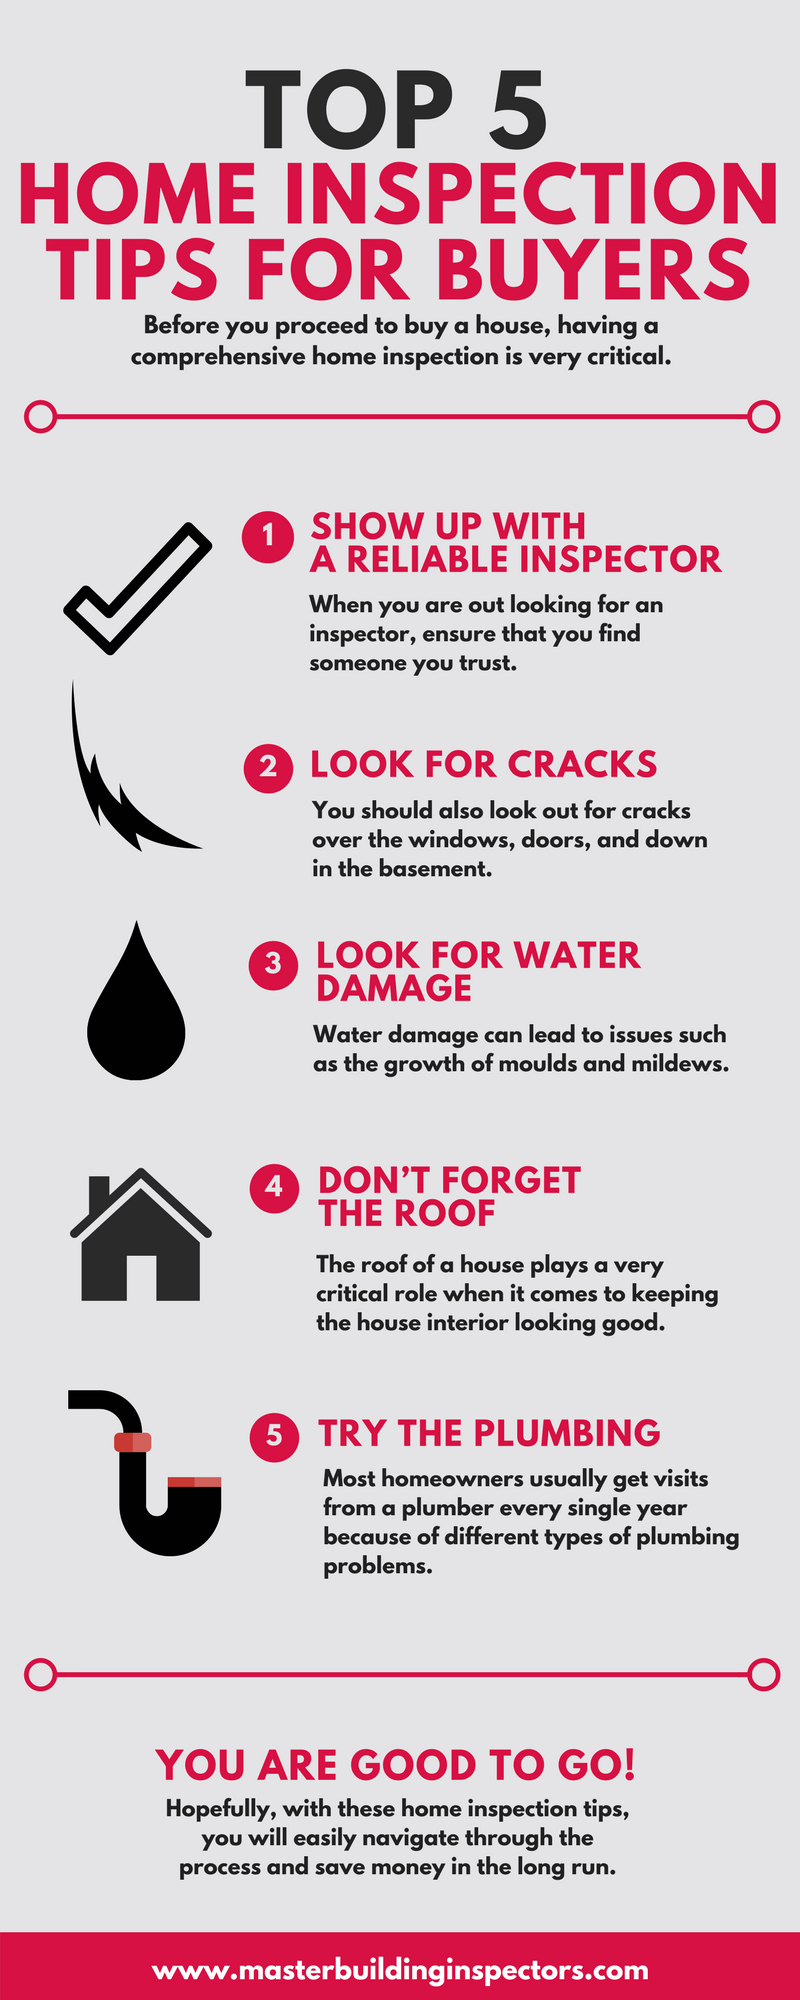 Home Inspection Tips For Buyers on home finishing tips, home construction tips, home storage tips, home safety tips, home management tips, home energy tips, home buying checklist, landscaping tips, home business tips, home title insurance, home fitness tips, home packing tips, cleaning tips, real estate tips, home security tips, home insurance tips, home care tips, home home, home estate, home design tips,